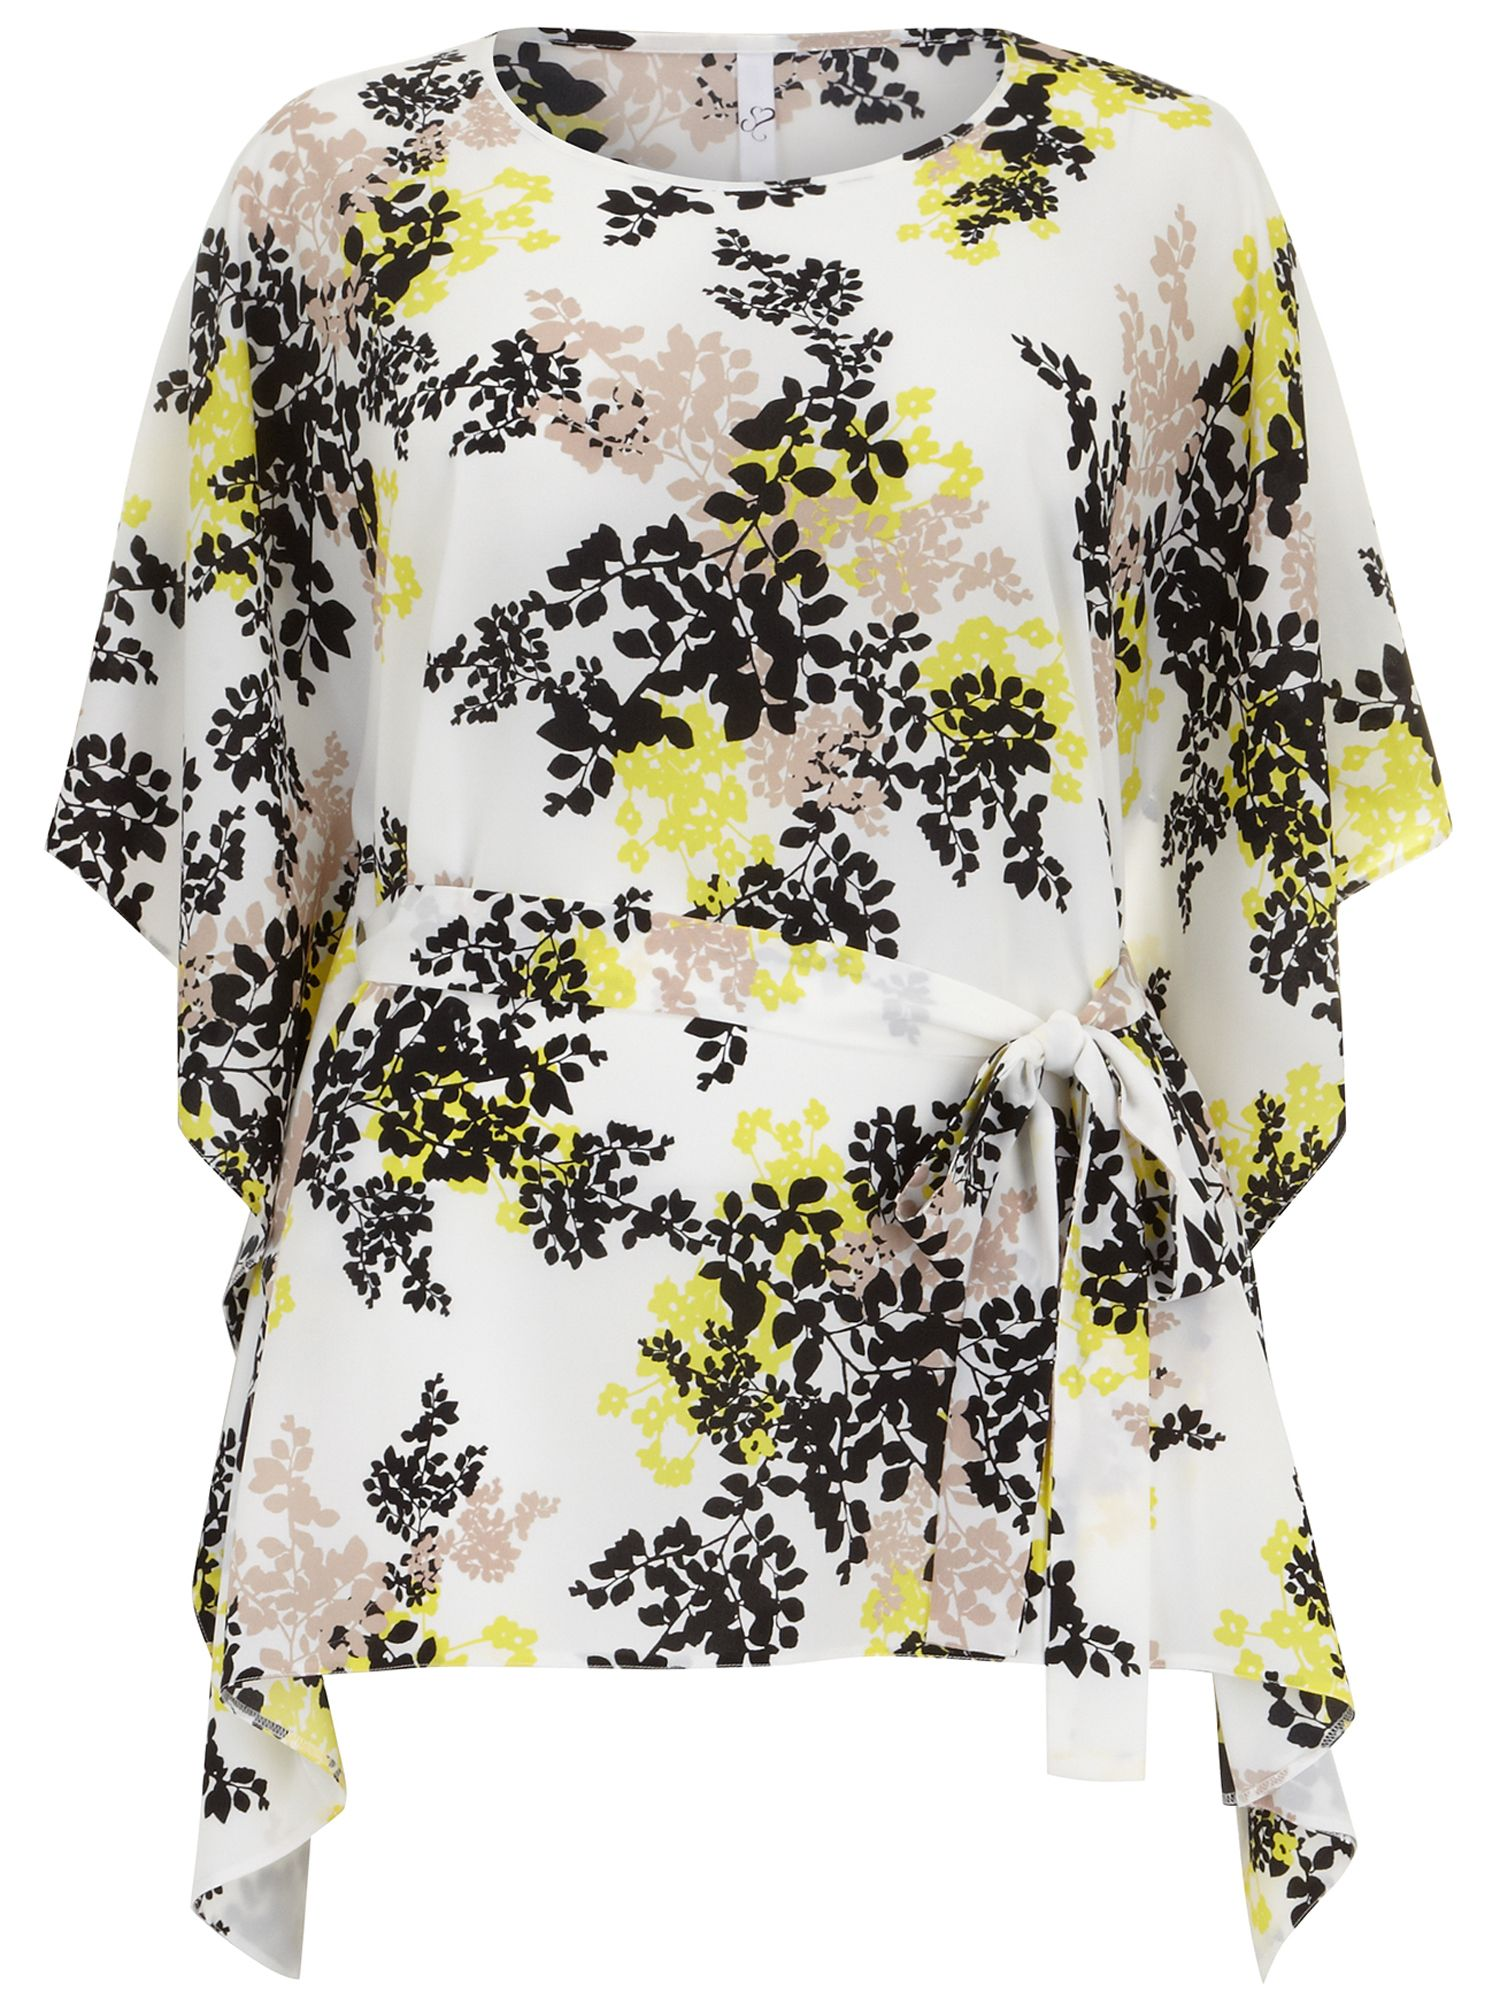 Floral crepe square top